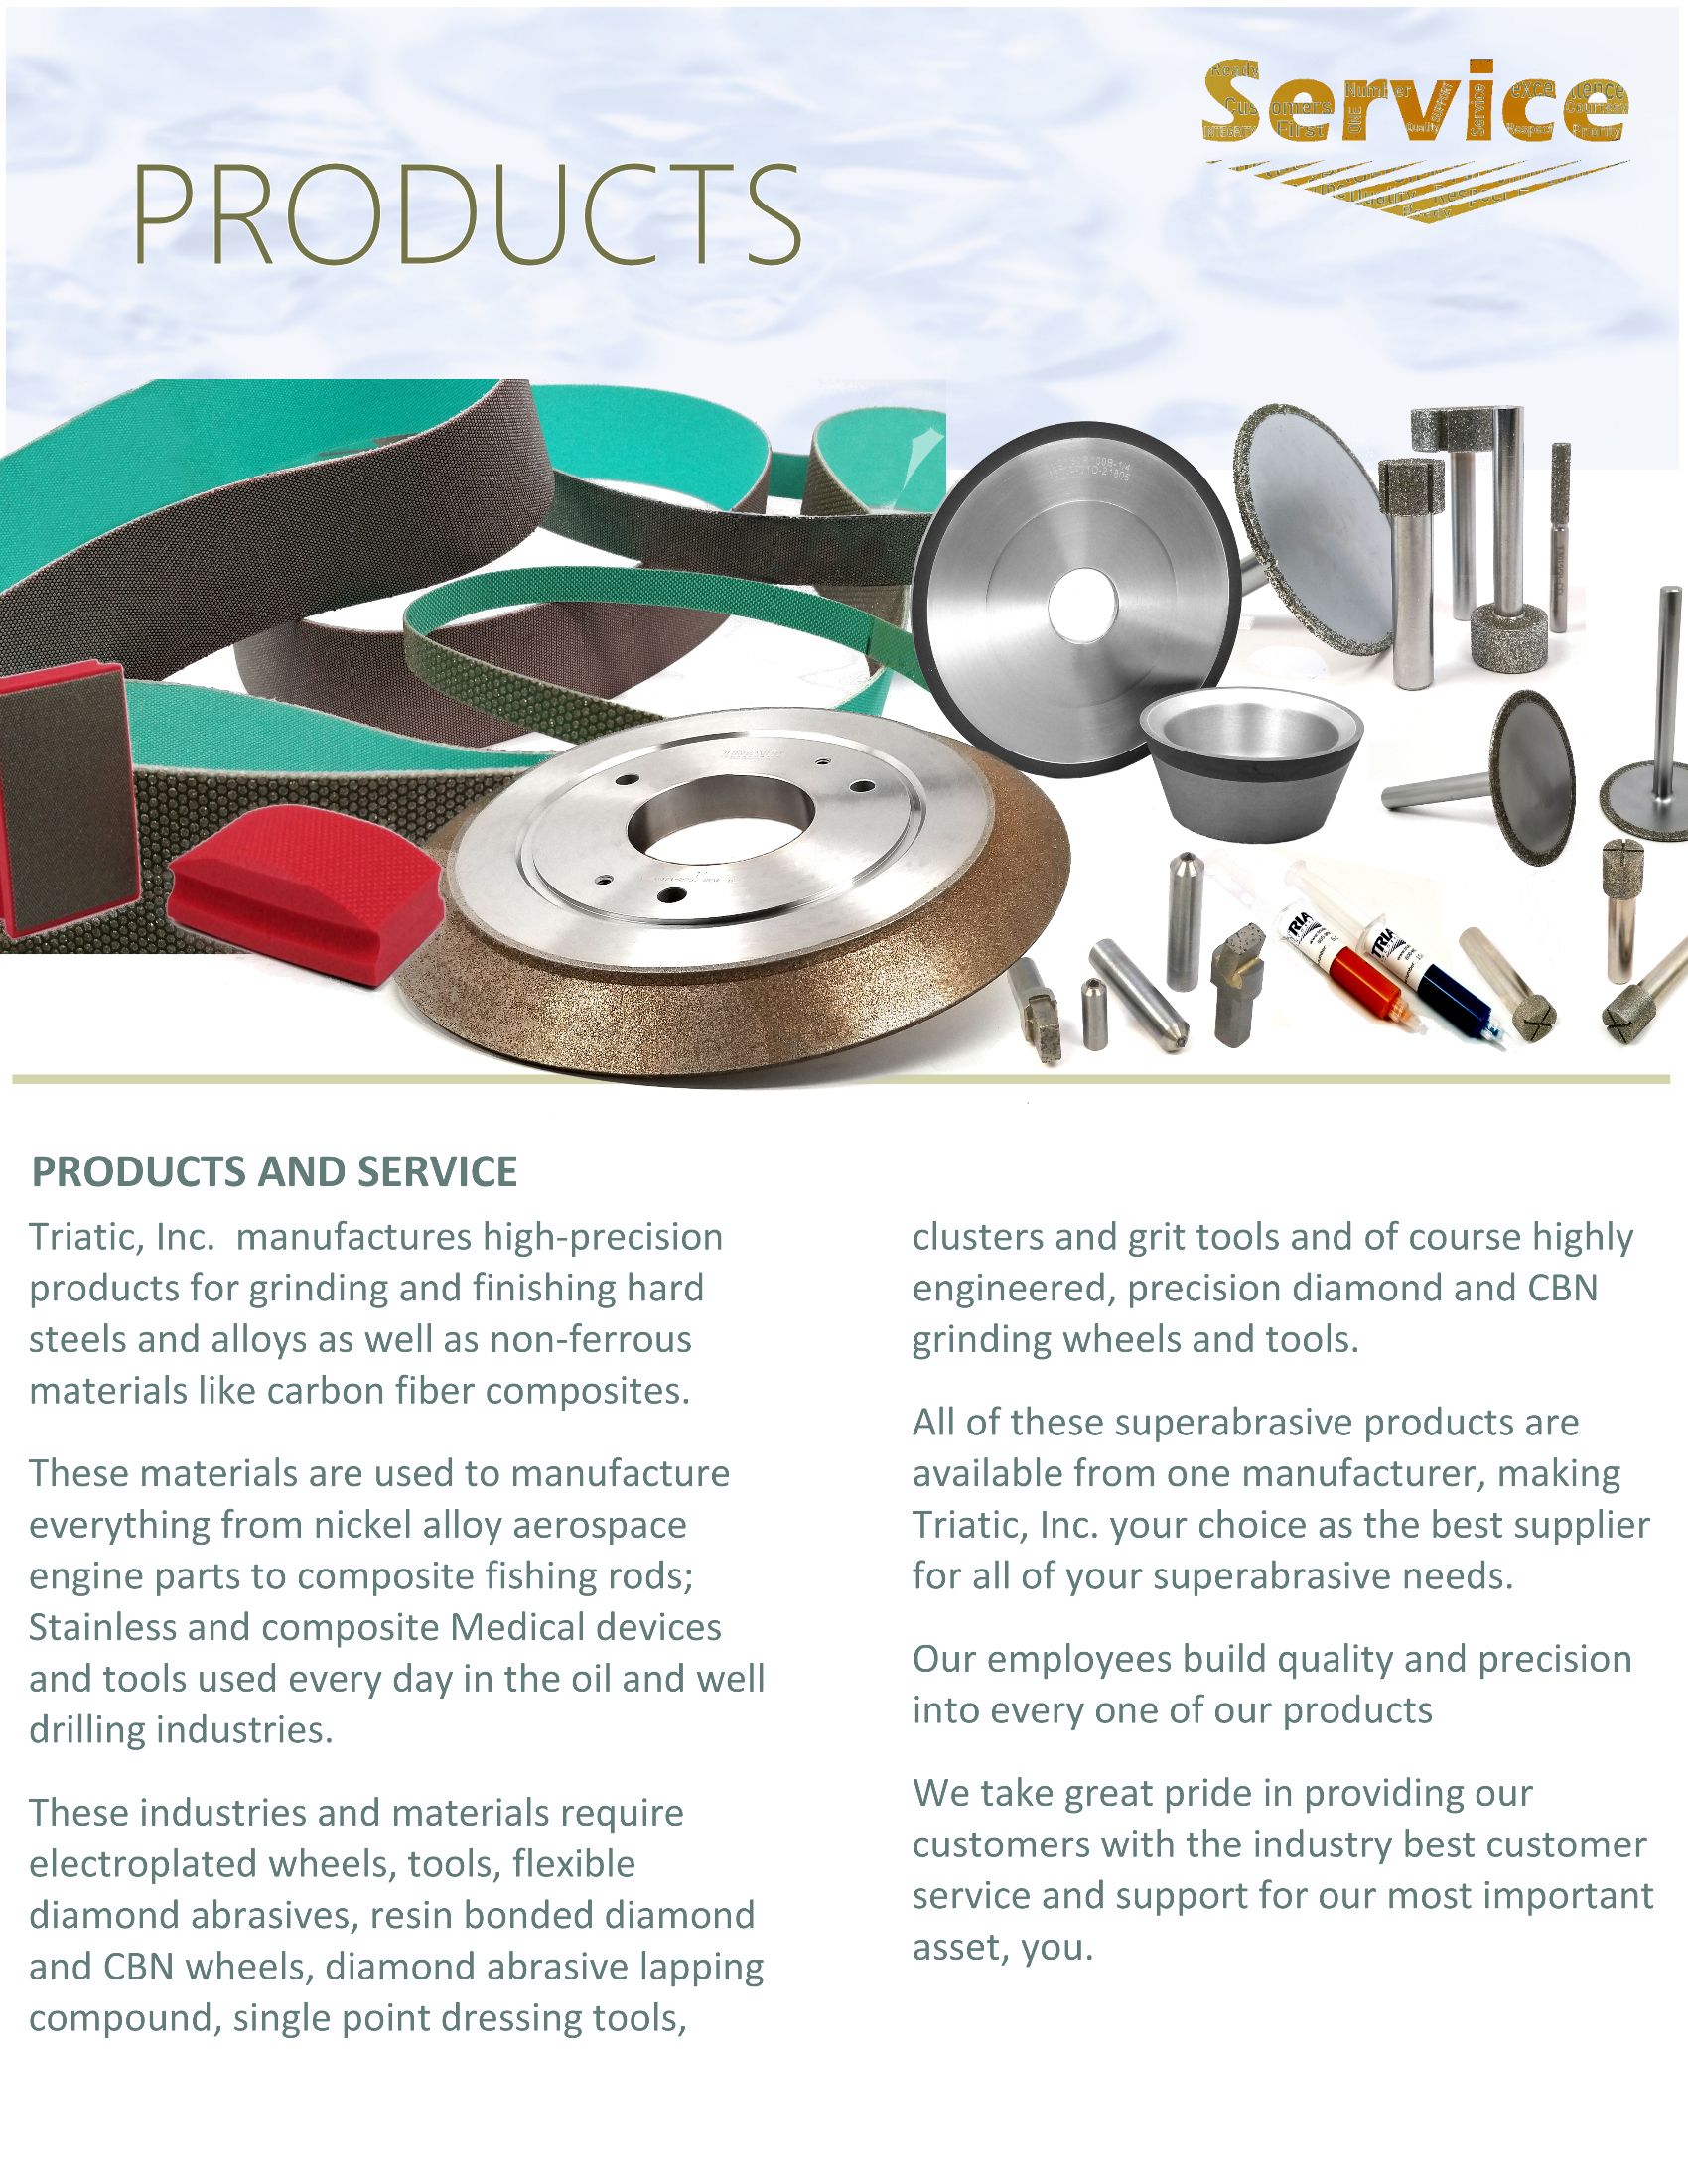 products-landing-page.jpg